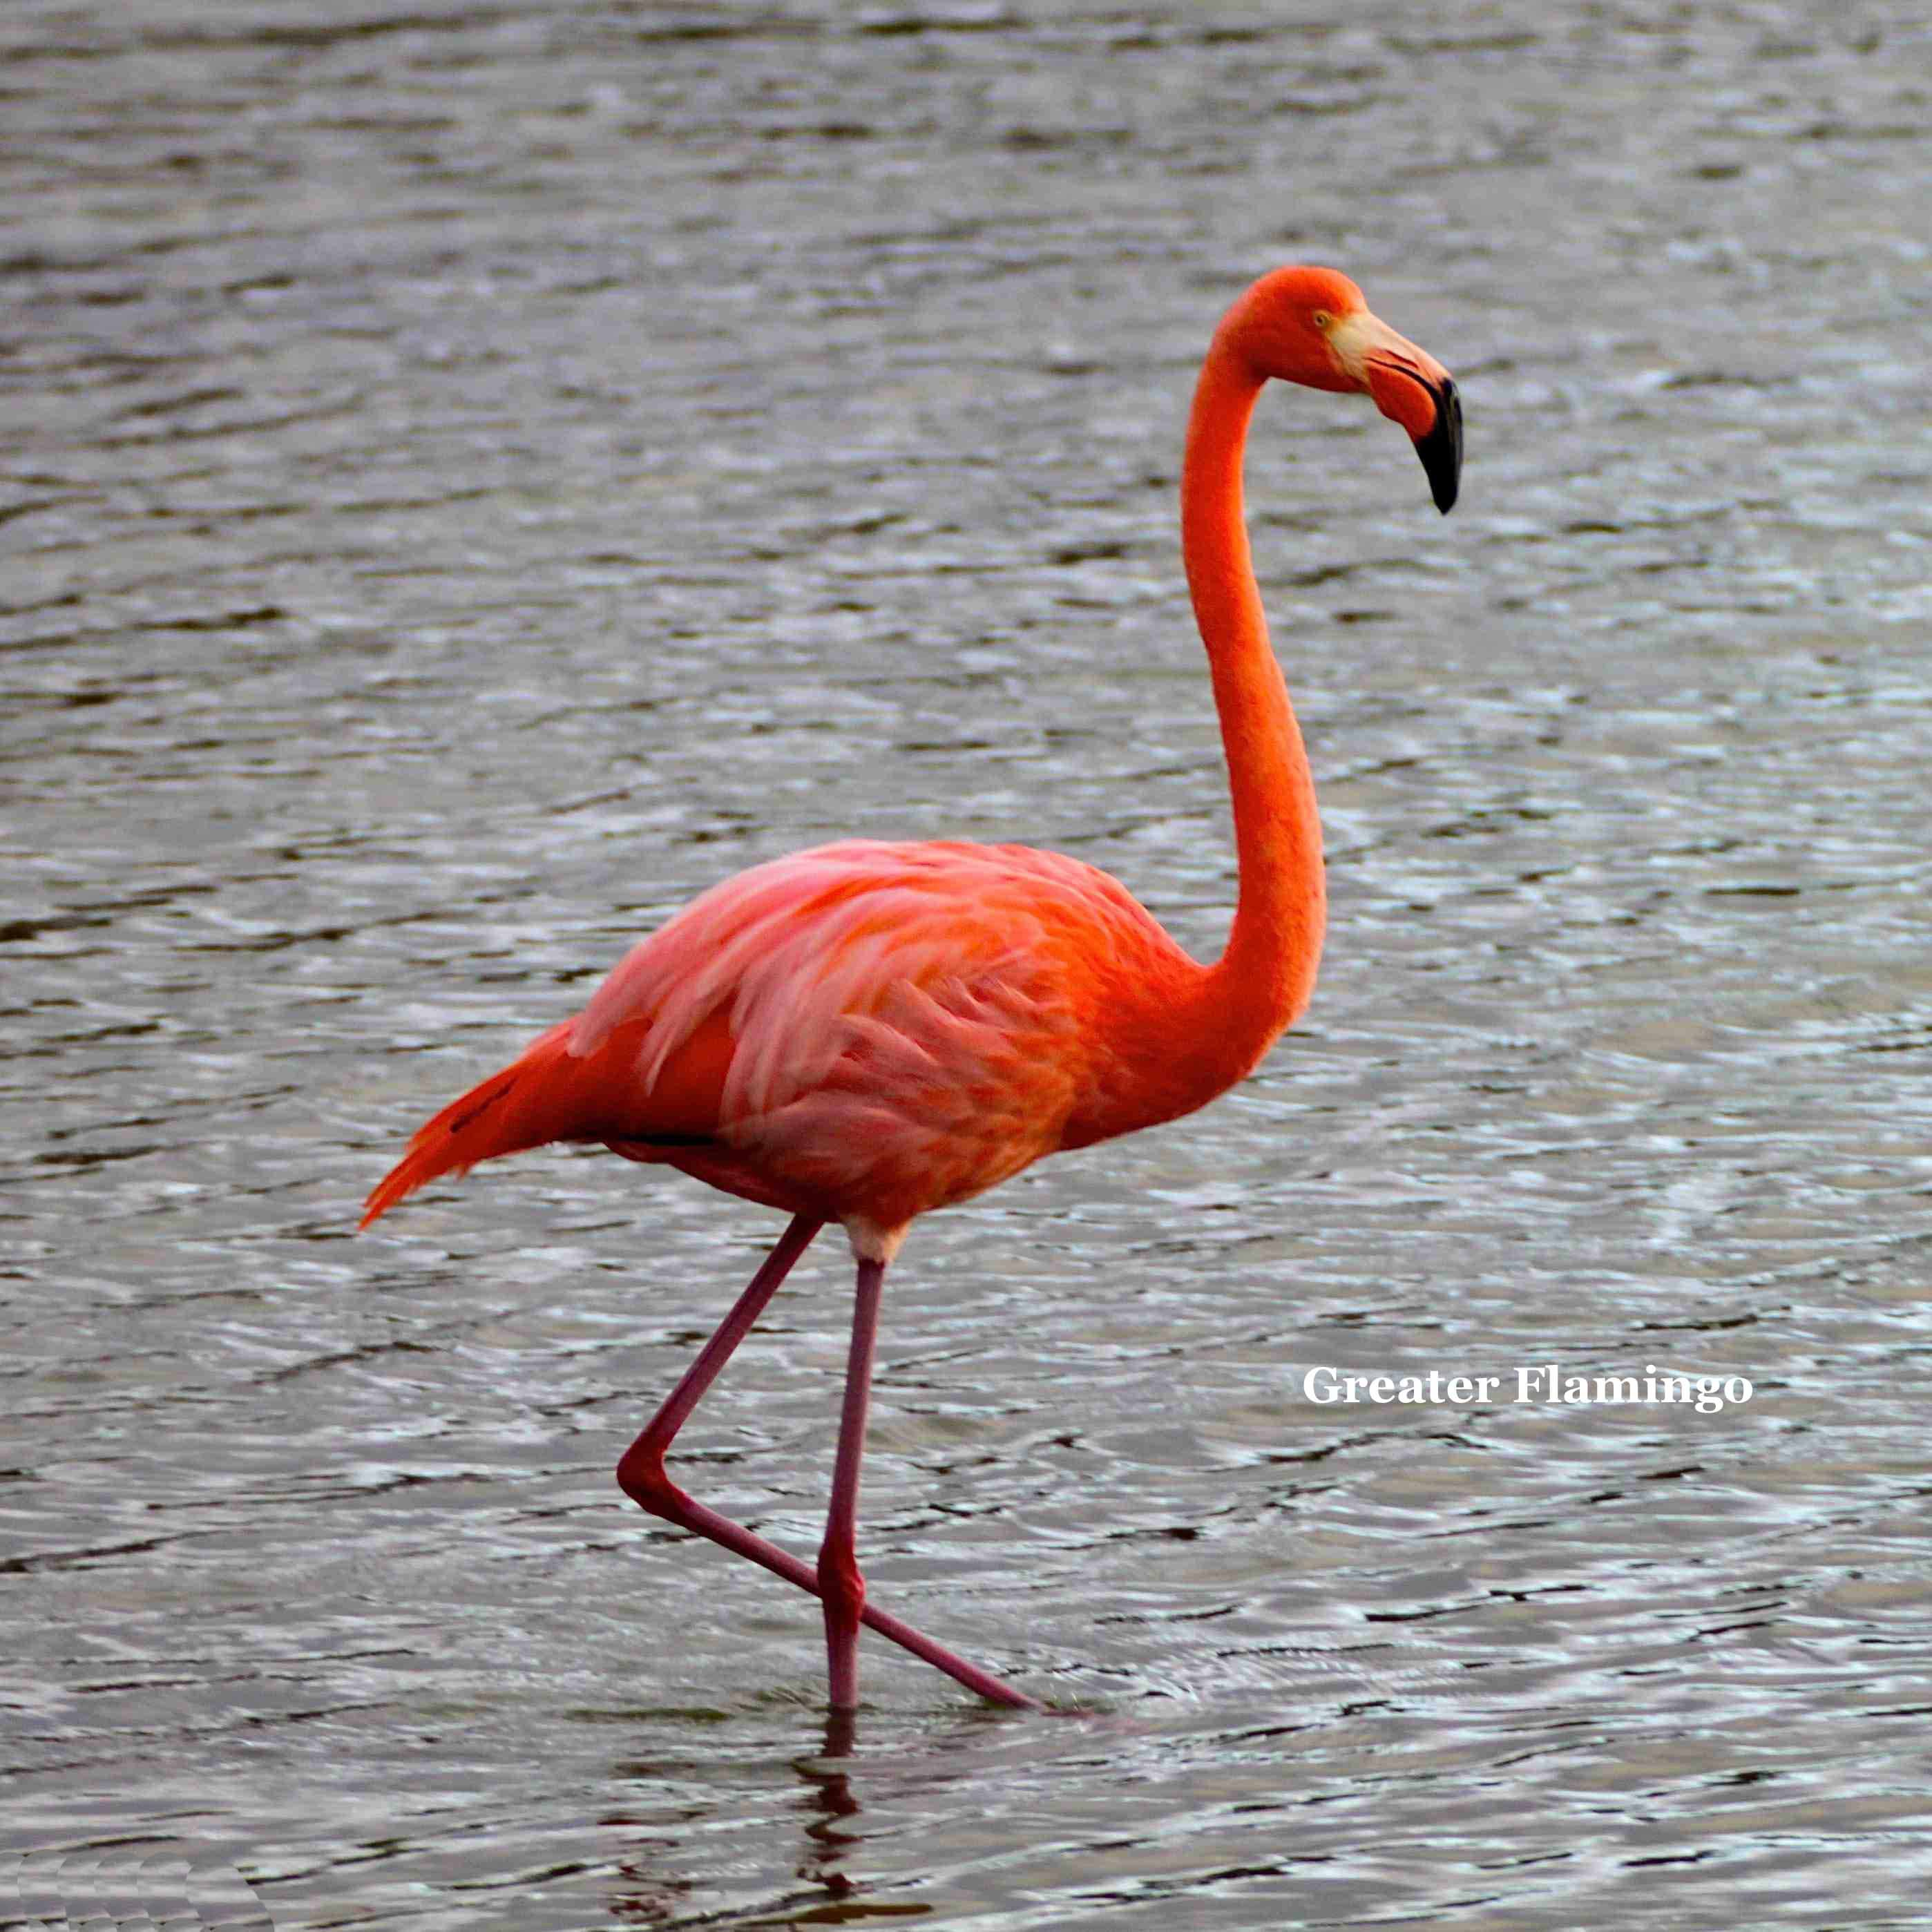 Greater Flamingo | Greater flamingo, Flamingo and Bird